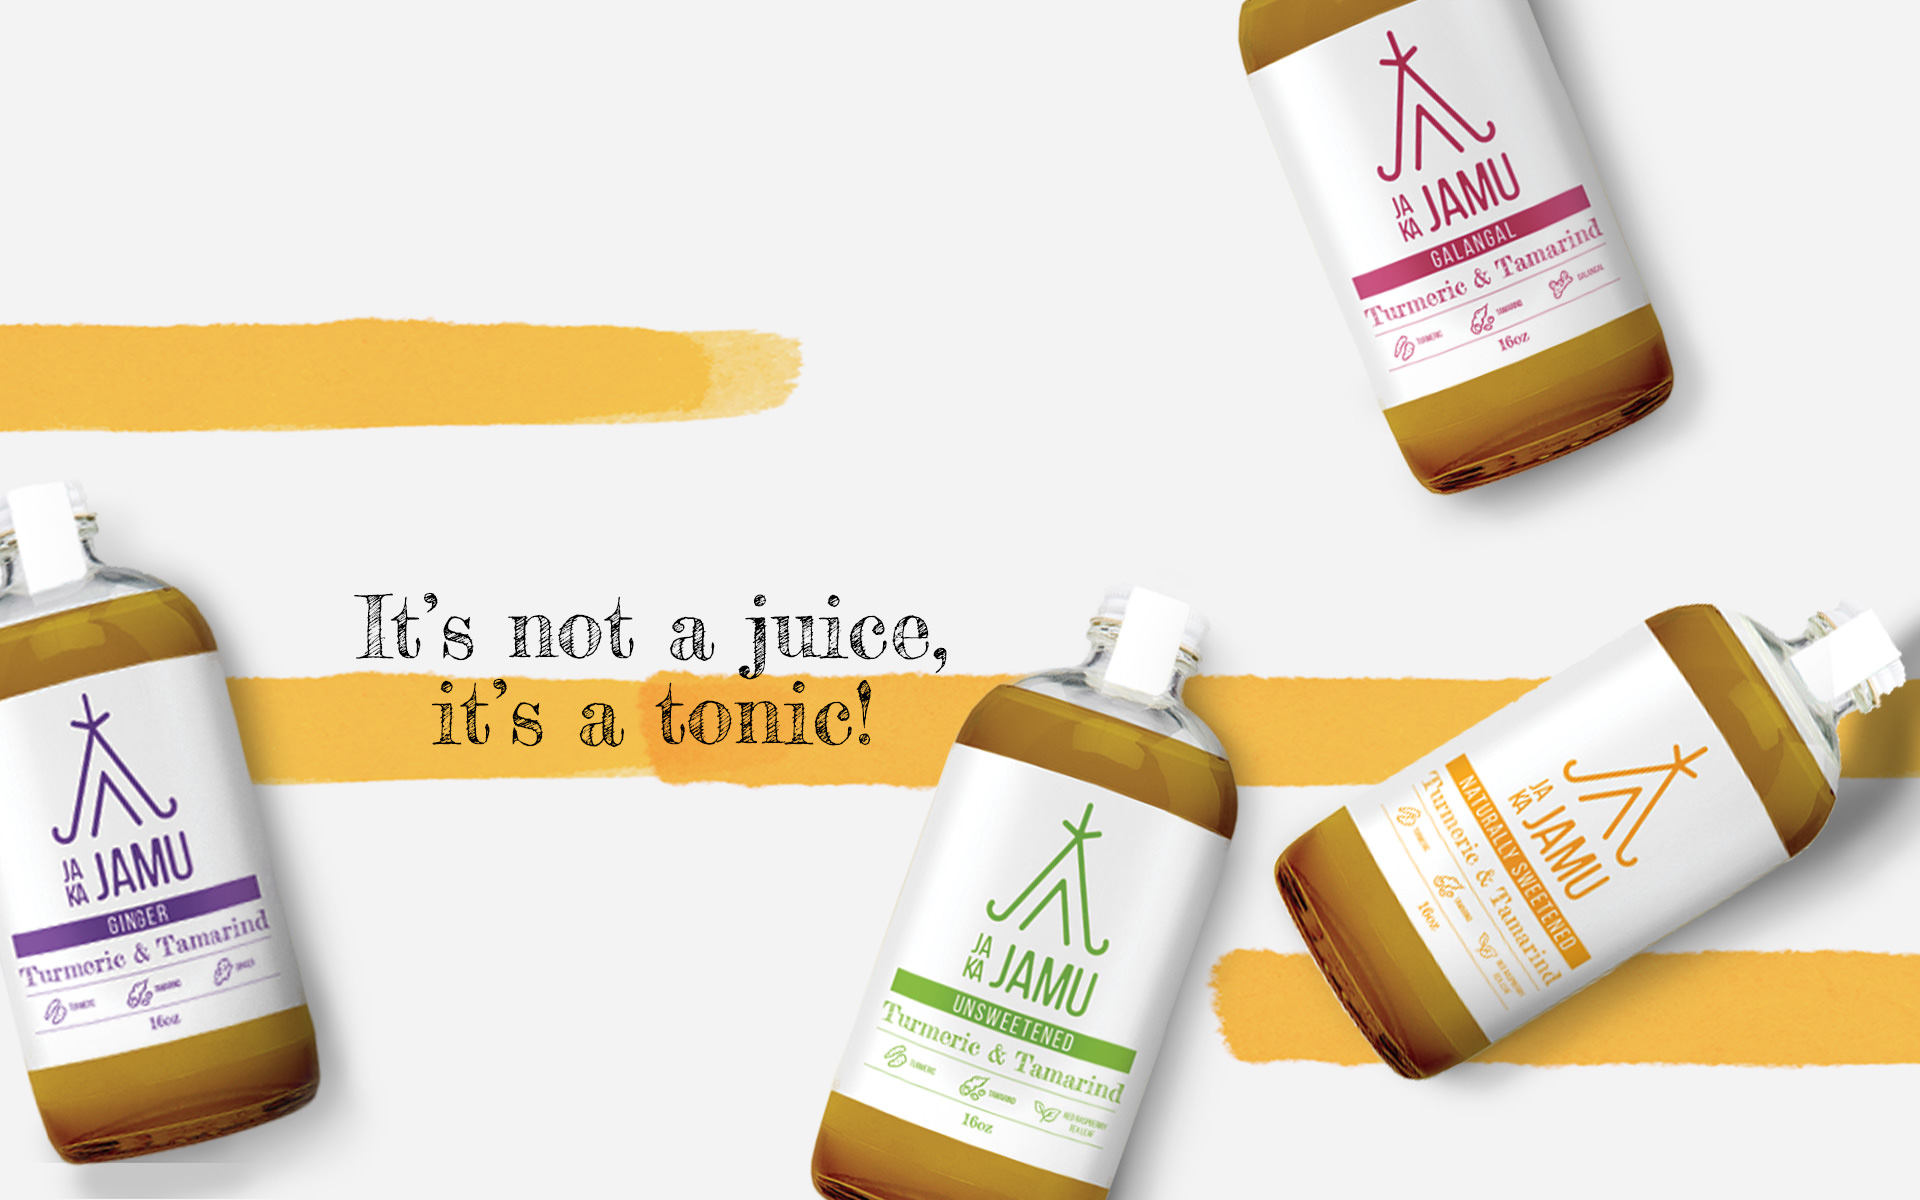 Jaka Jamu packaging design